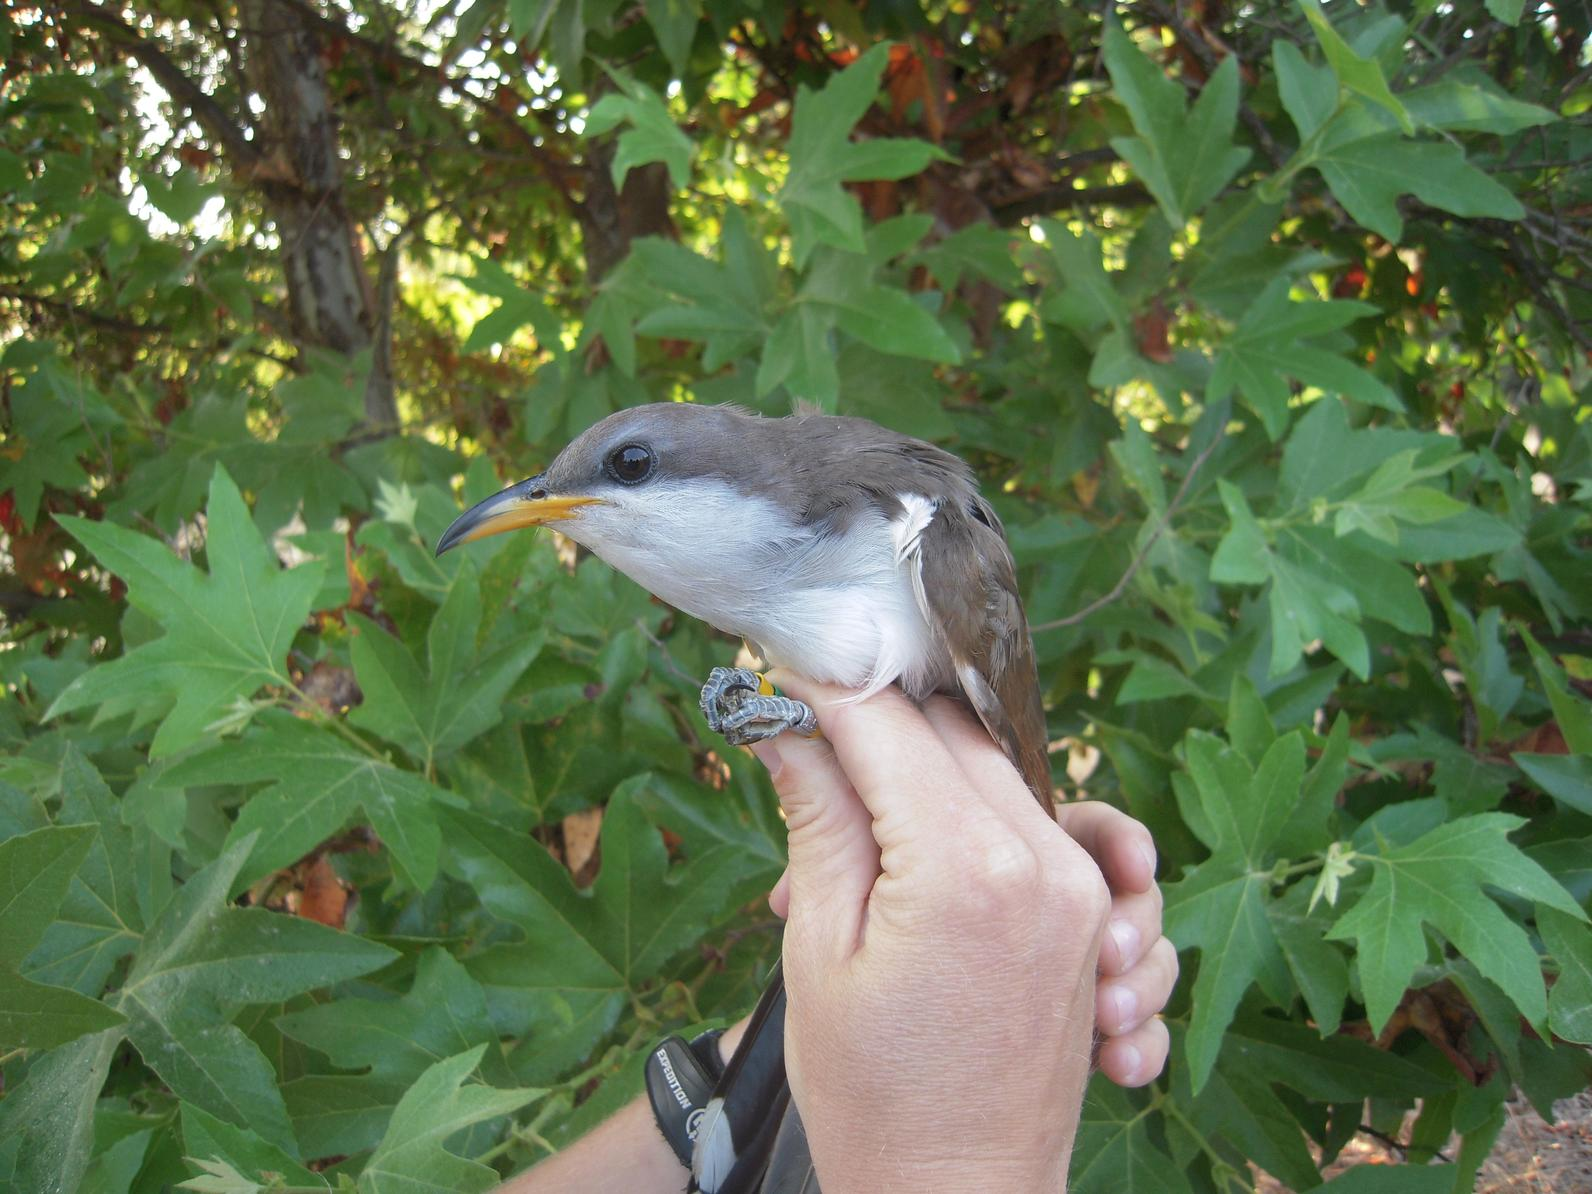 A Western Yellow-billed Cuckoo in a hand.